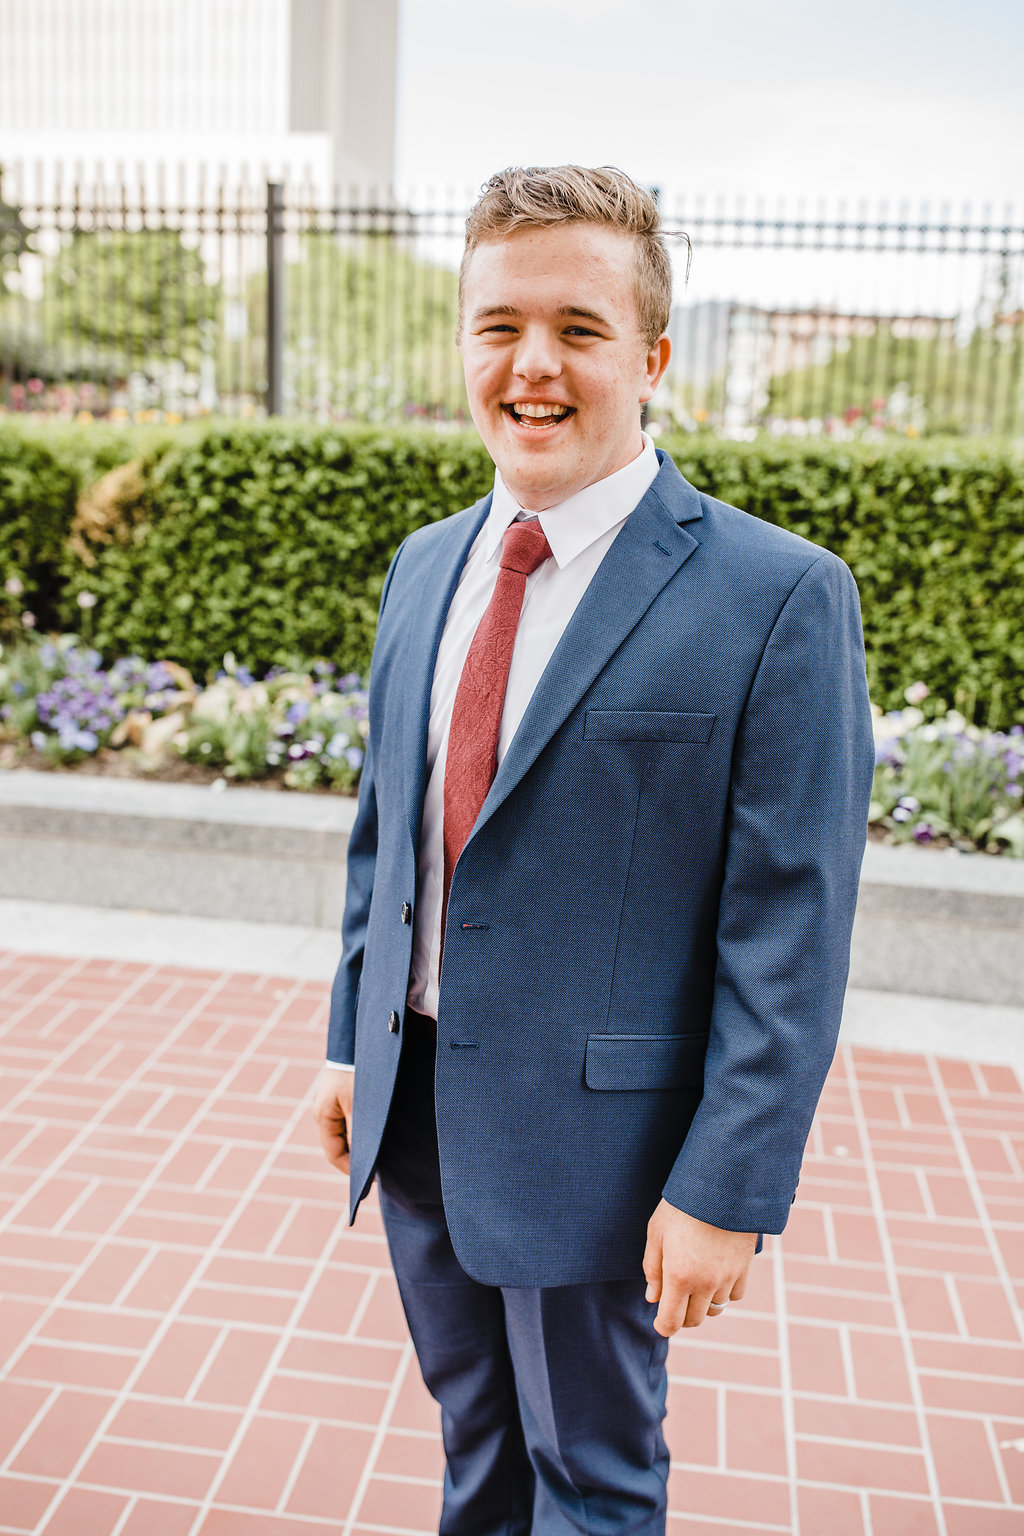 formal groom photo before the first look at the salt lake city lds temple navy blue wedding suit